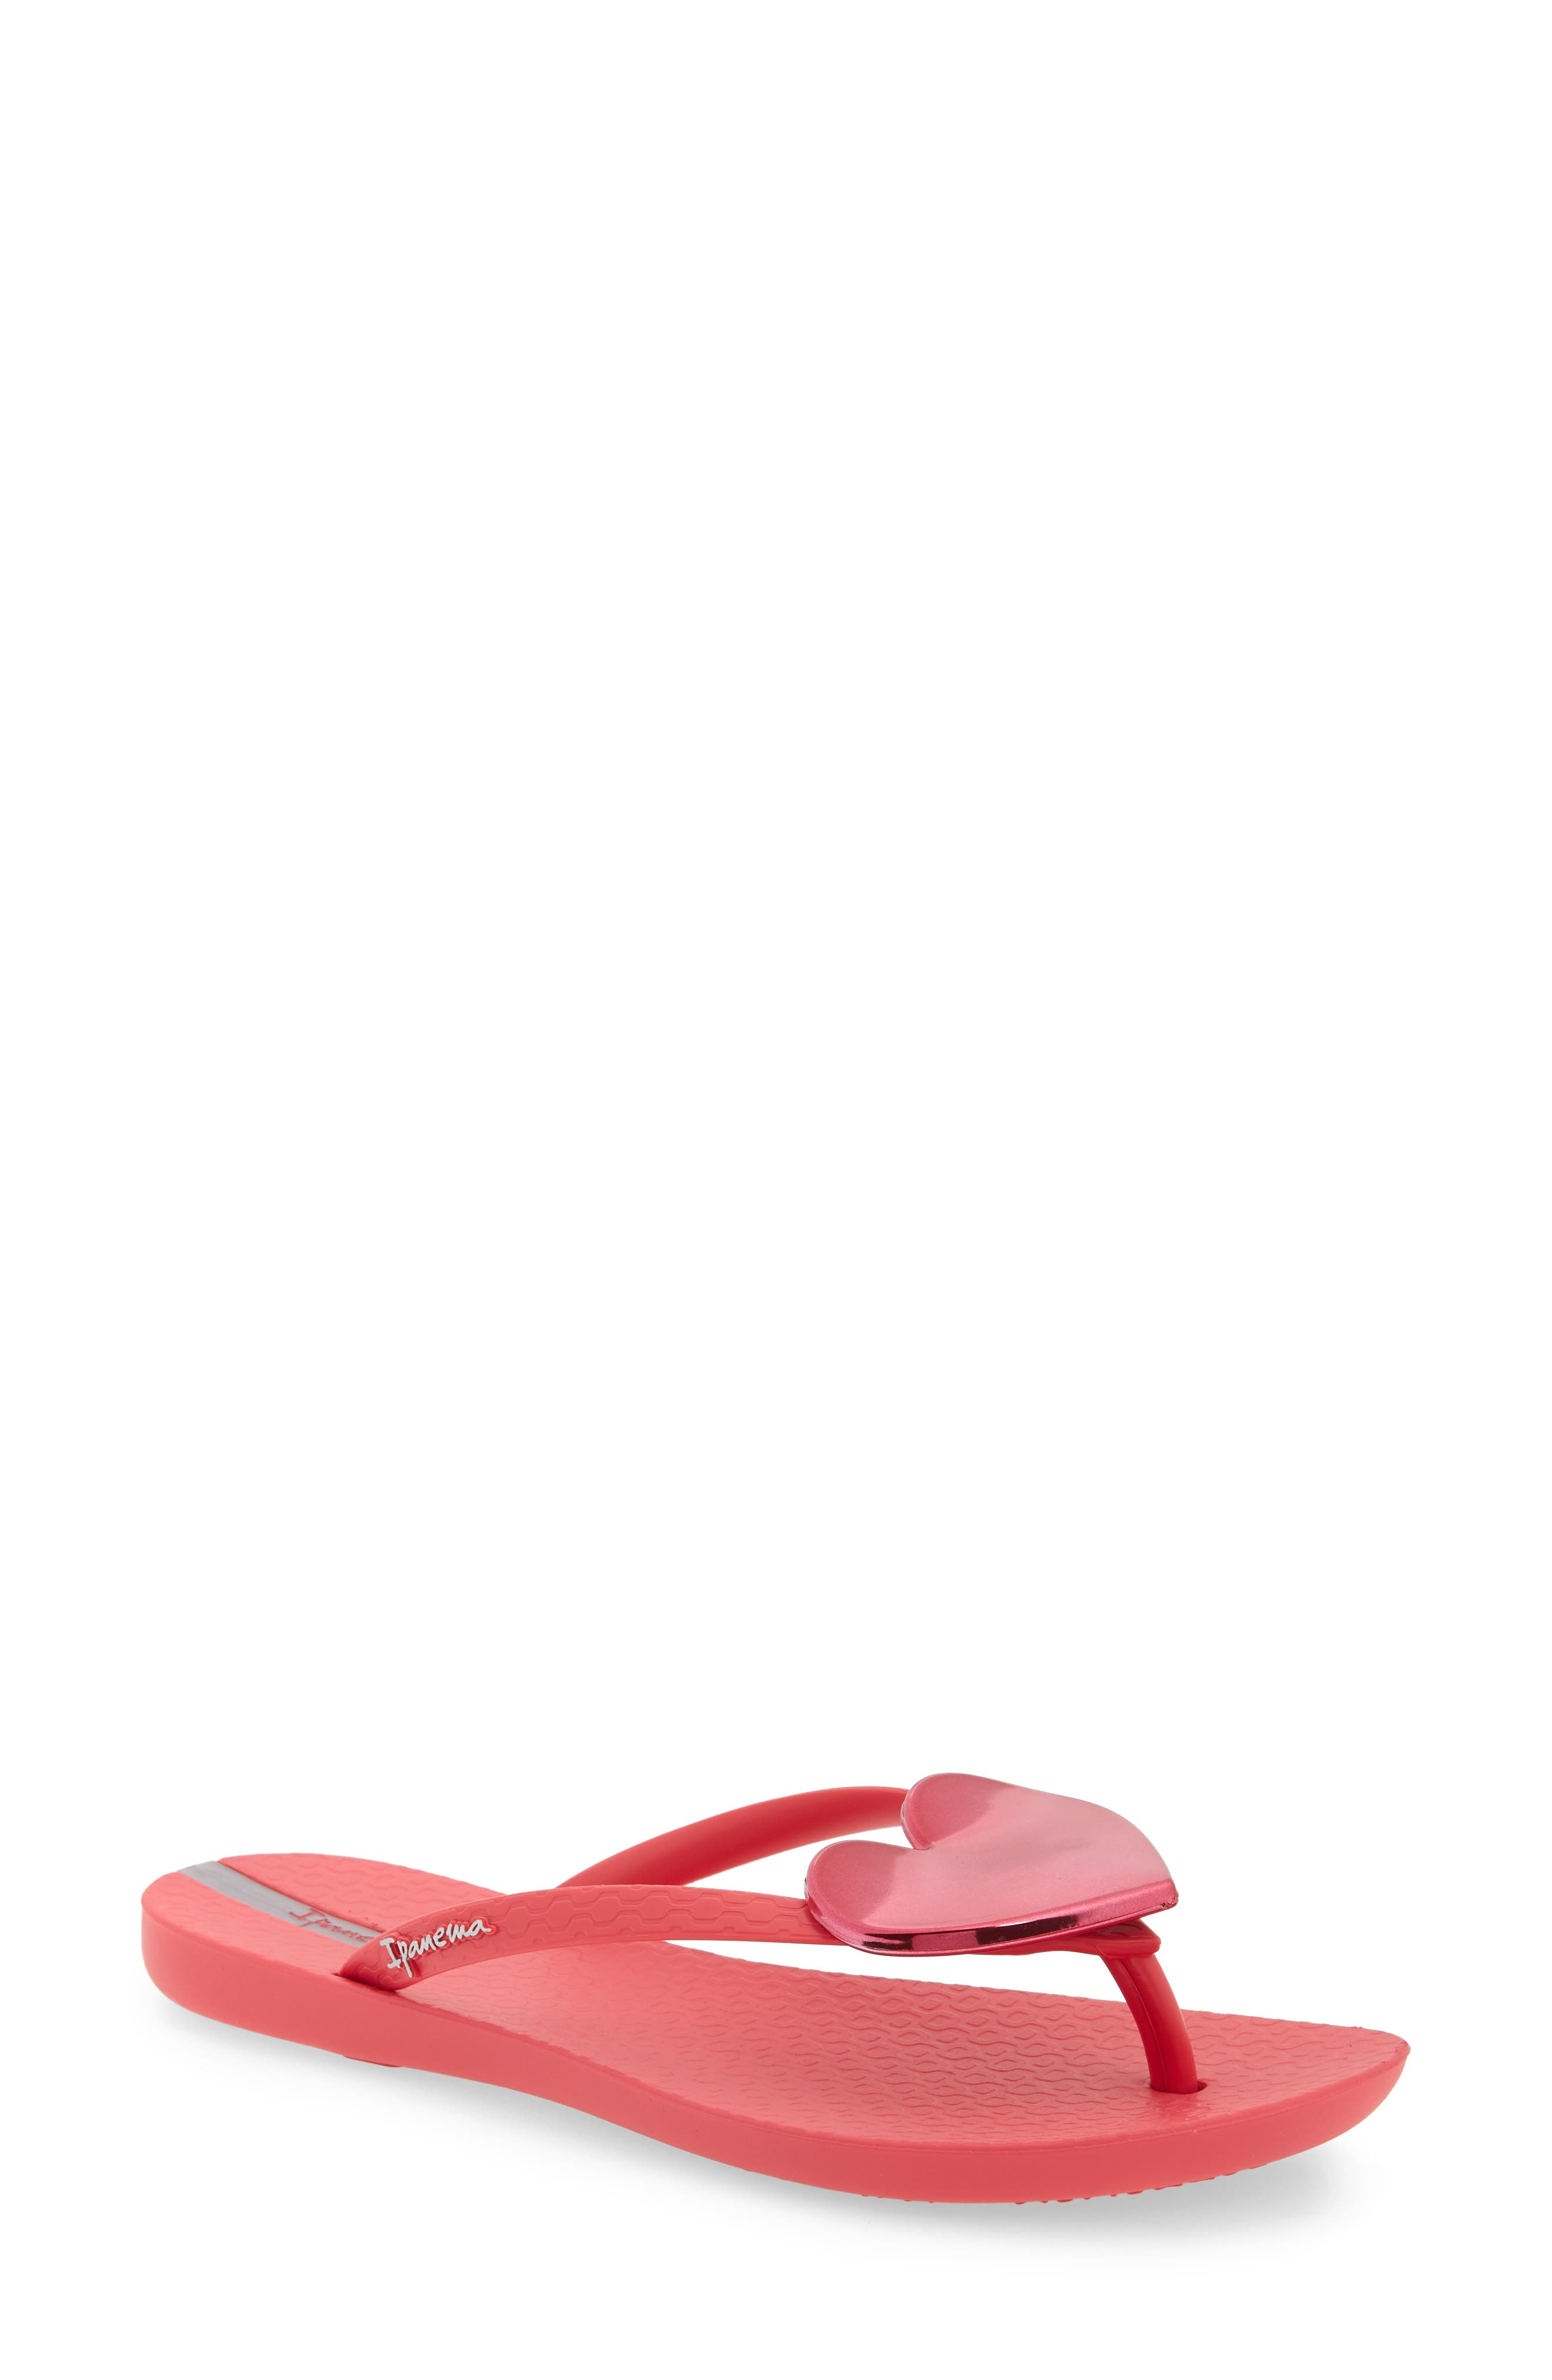 IPANEMA, Wave Heart Flip Flop, Main thumbnail 1, color, PINK/ RED